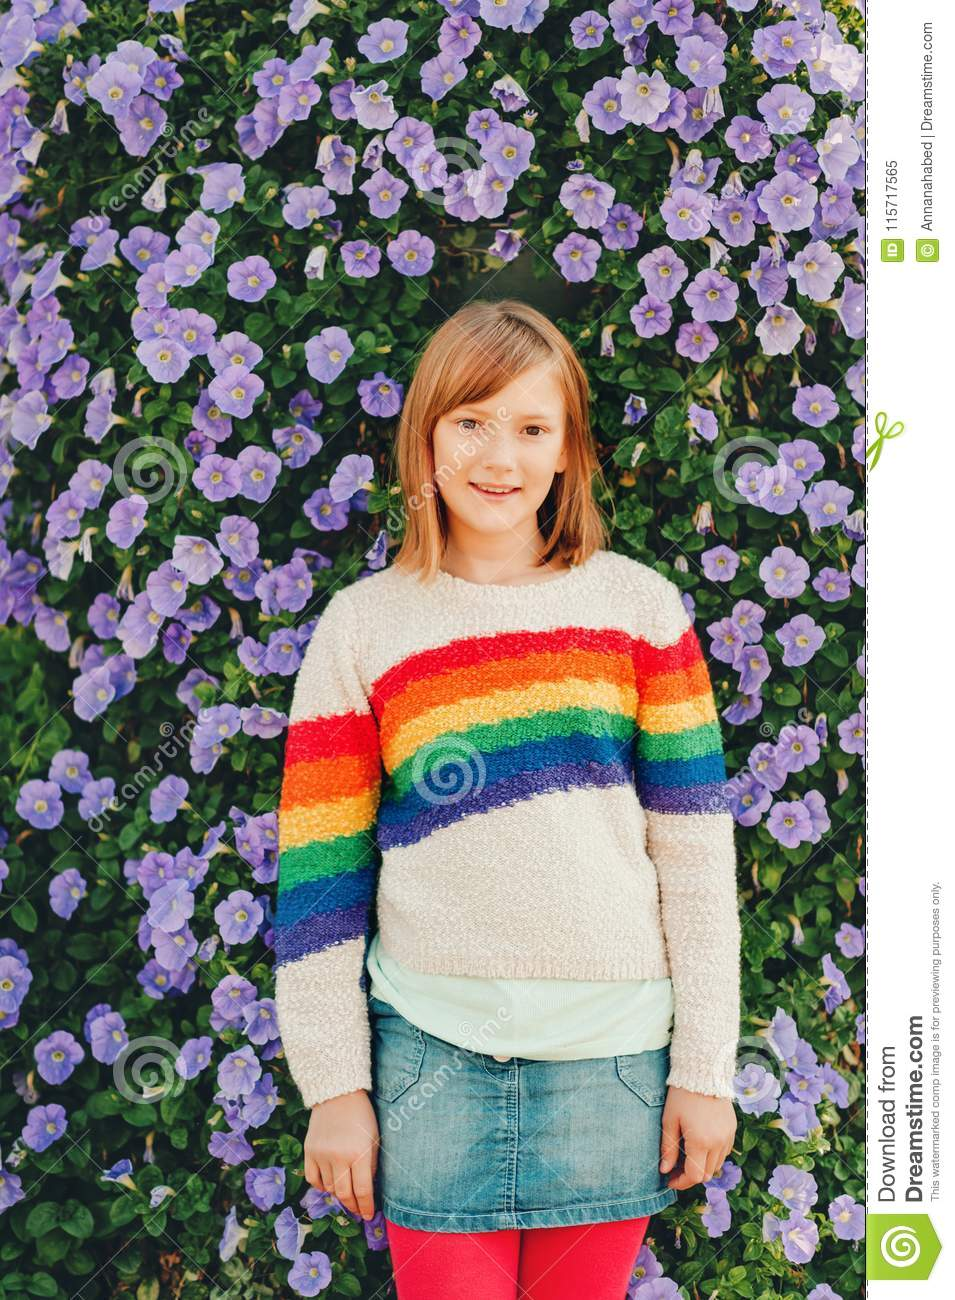 Outdoor Fashion Portrait Of Cute Preteen Girl Stock Image Image Of